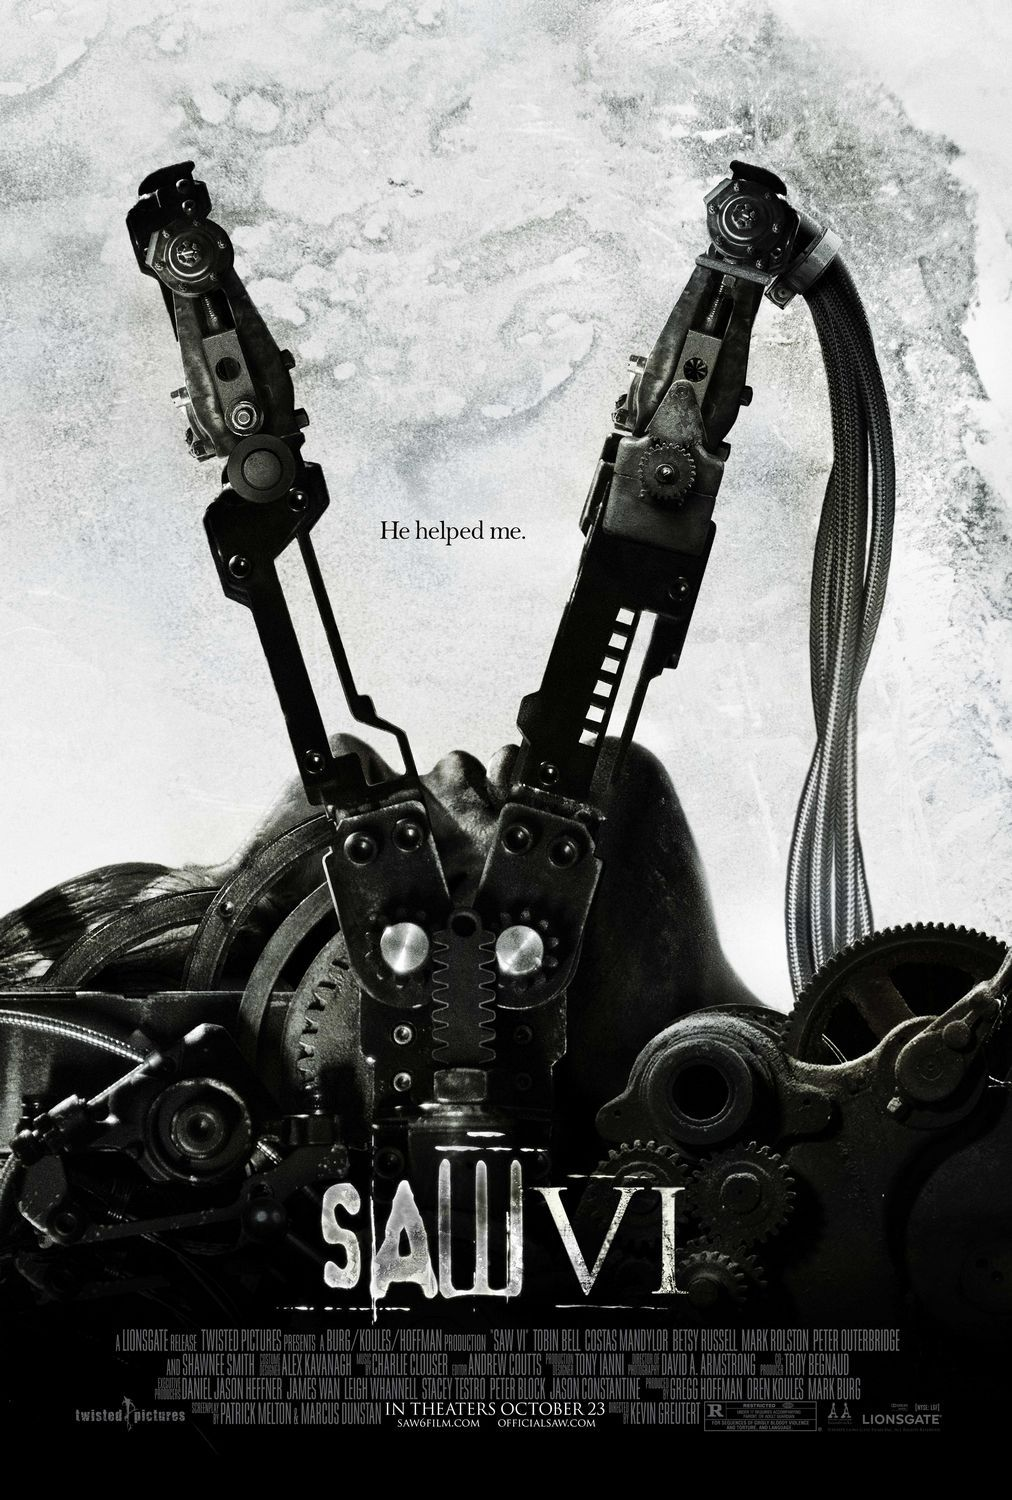 Saw 6 - film poster - Burg - Koules - Hoffman - Tobin Bell - Costas Mandylor - Betsy Russell - Mark Rolston - Peter Outerbridge